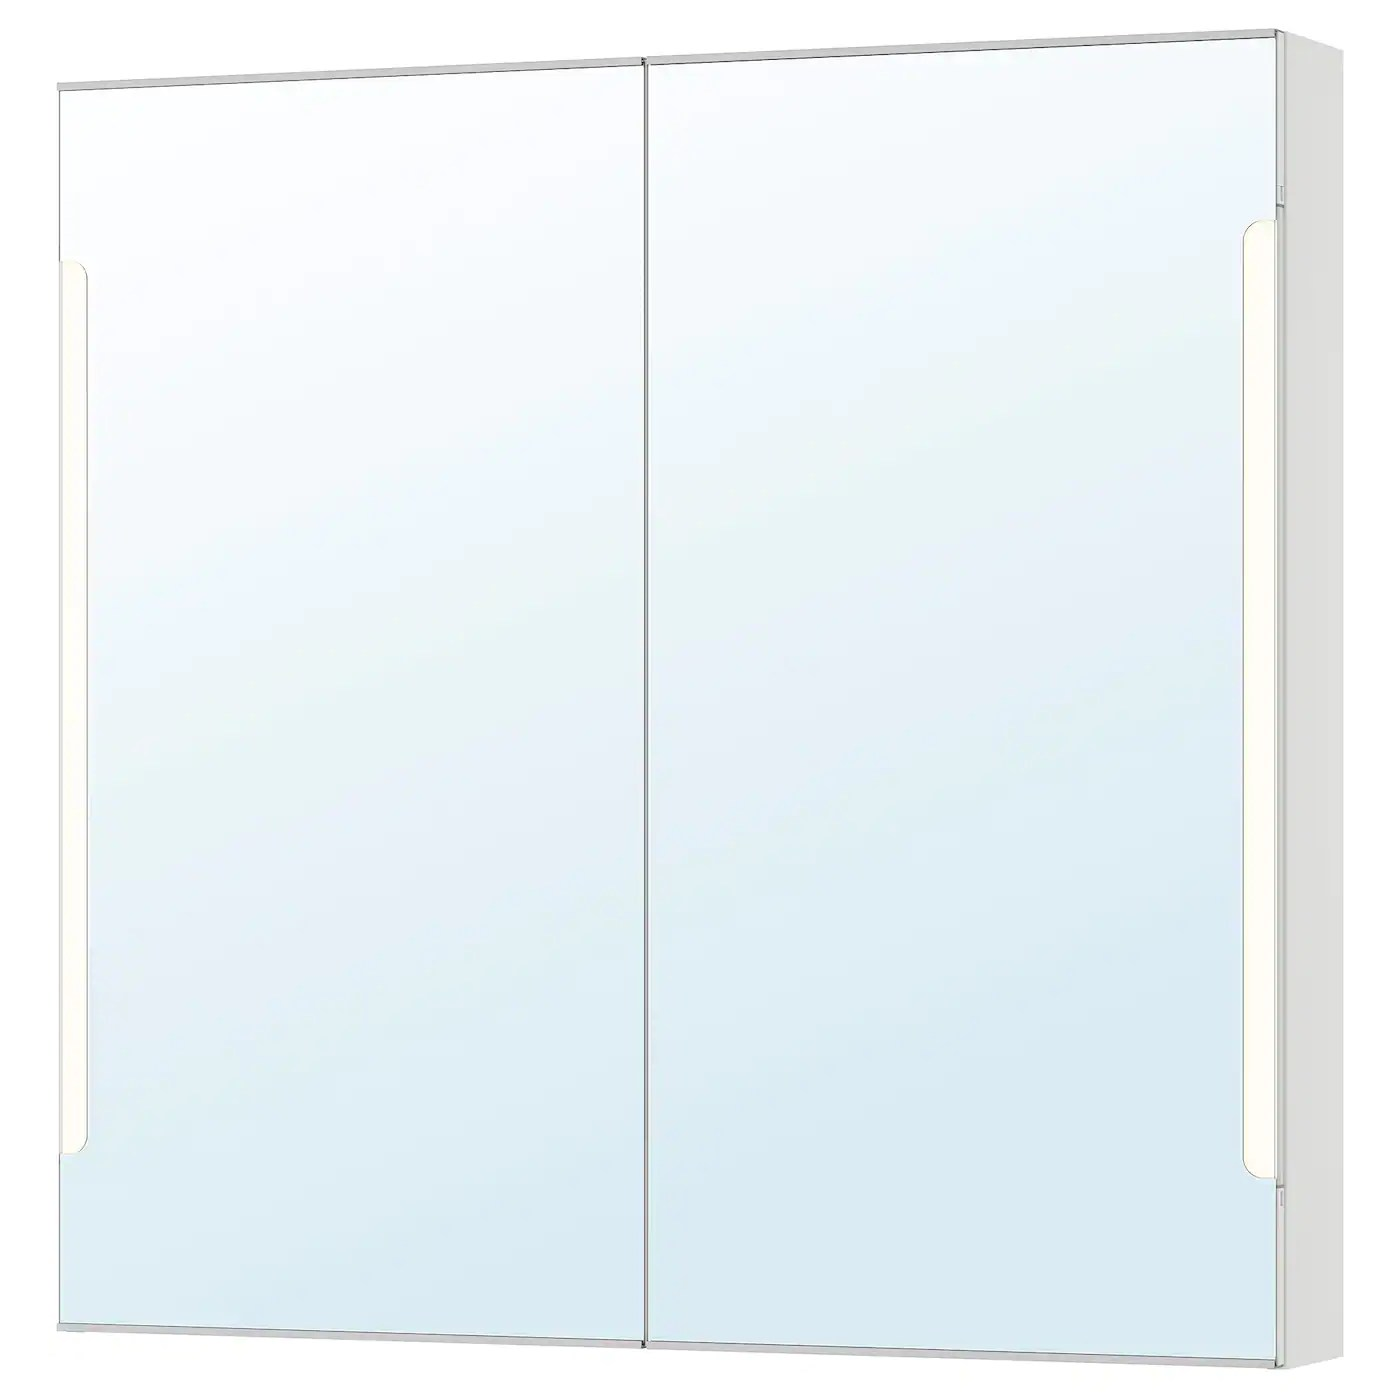 Spiegelschrank Ikea Storjorm White, Mirror Cab 2 Door/built-in Lighting, 100x14x96 Cm - Ikea